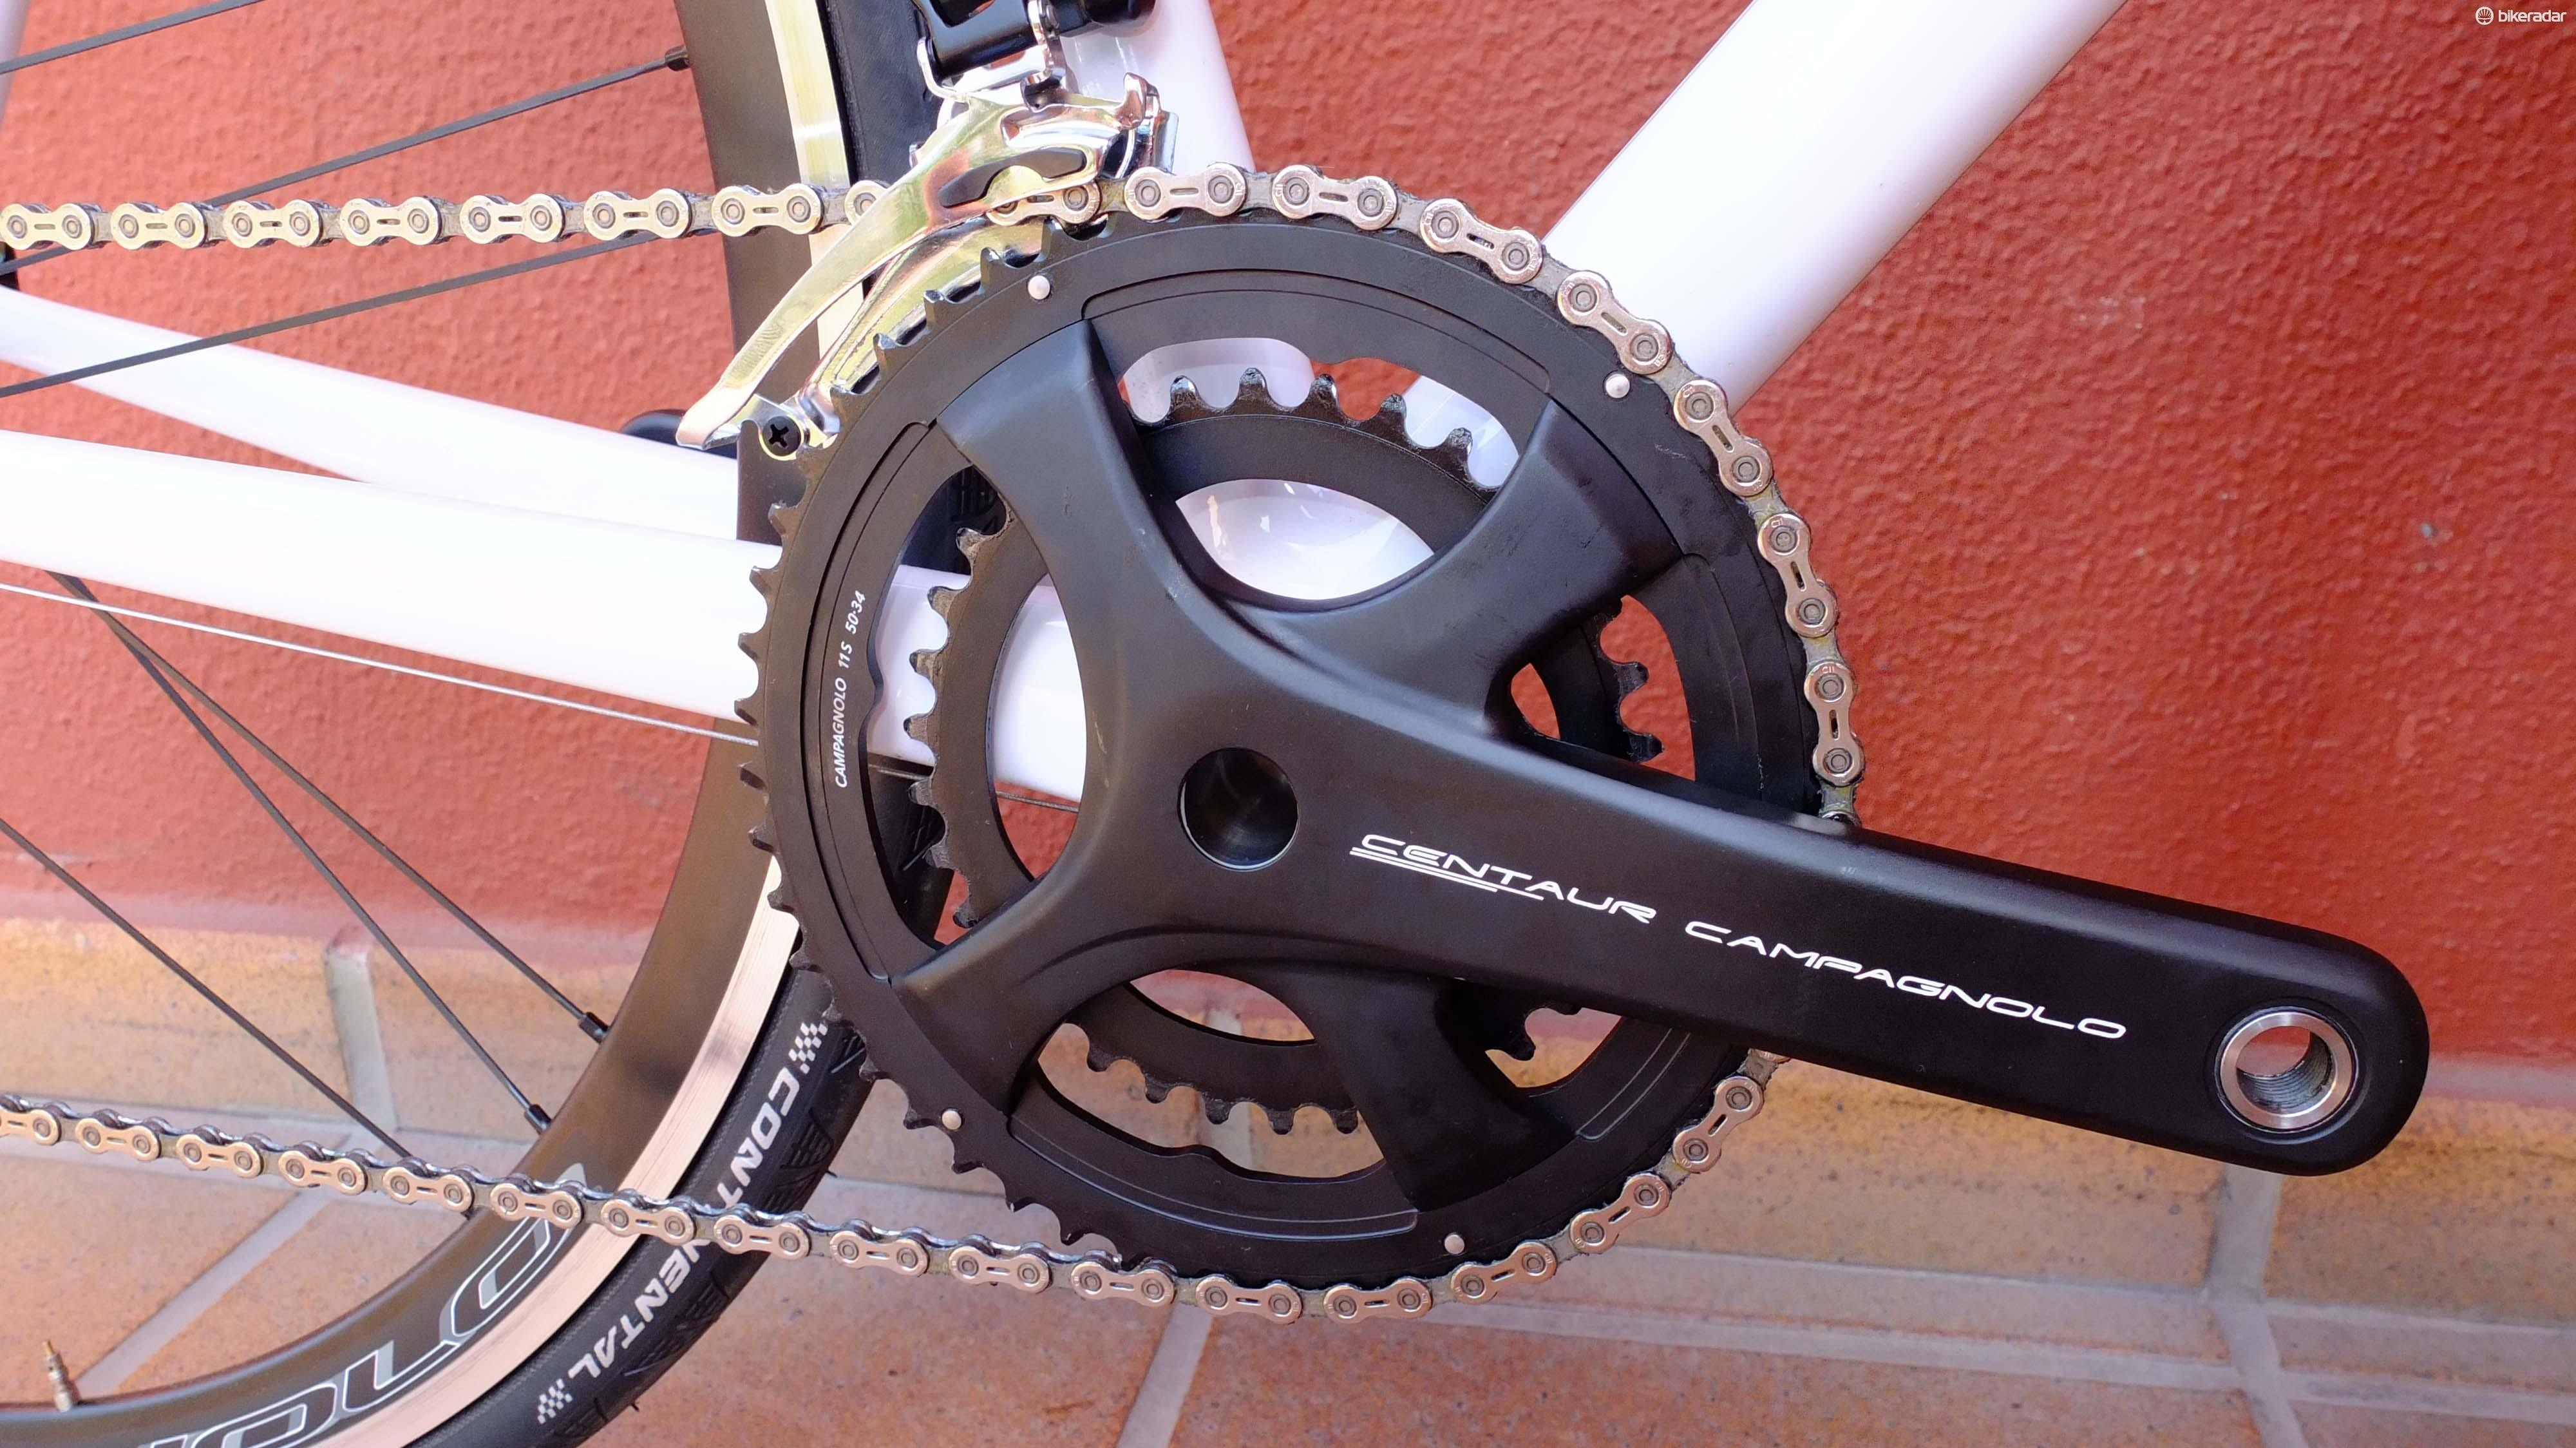 The aluminium four-arm crank has independent bolt circles for each ring and an Ultra-Torque axle